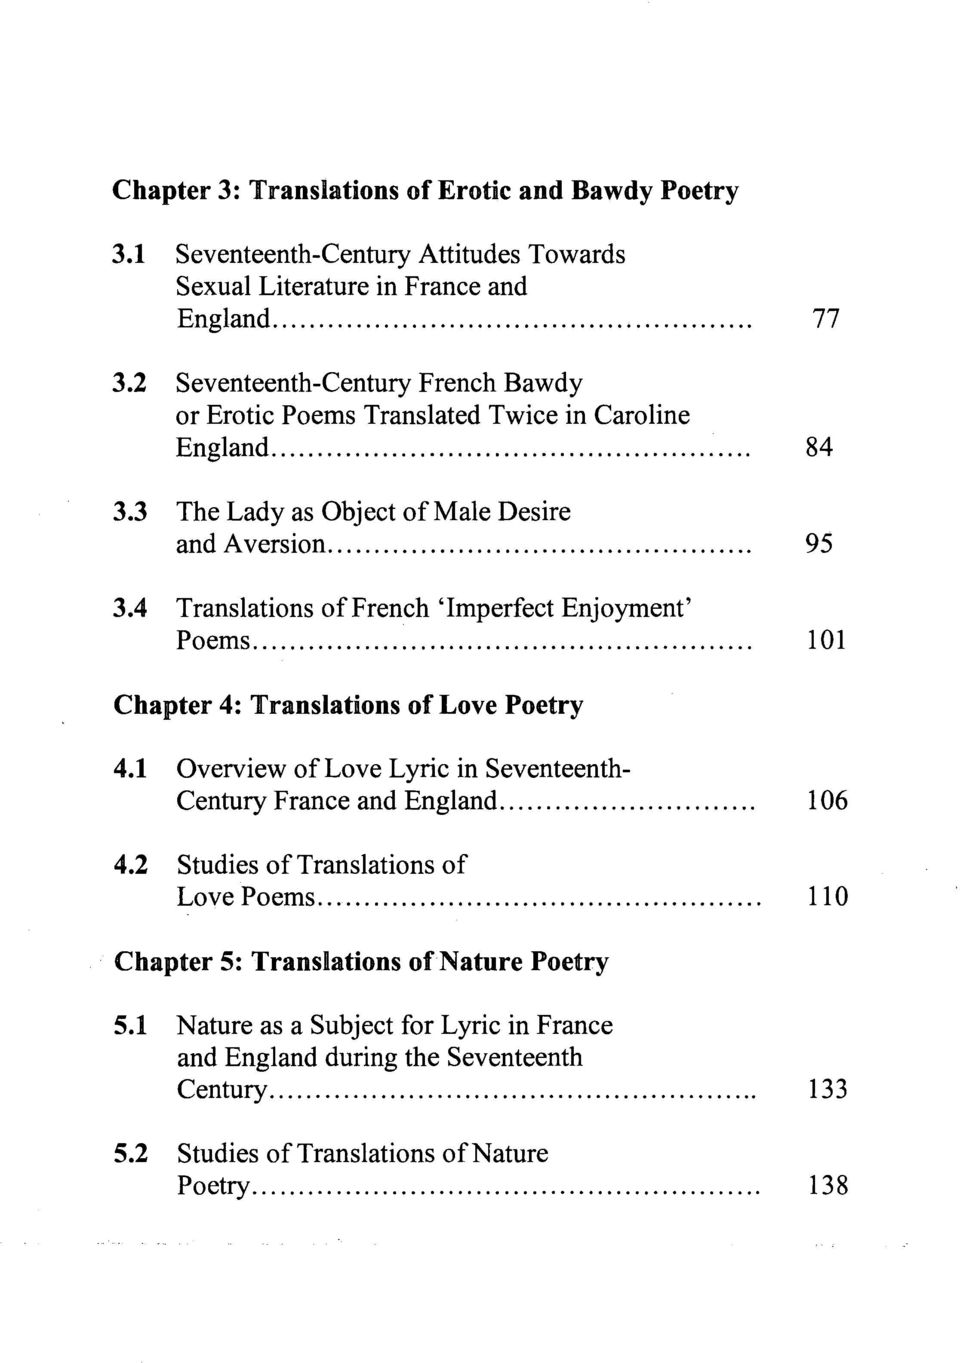 4 Translations of French 'Imperfect Enjoyment' Poems... 101 Chapter 4: Translations of Love Poetry 4.1 Overview of Love Lyric in Seventeenth- Century France and England... 106 4.